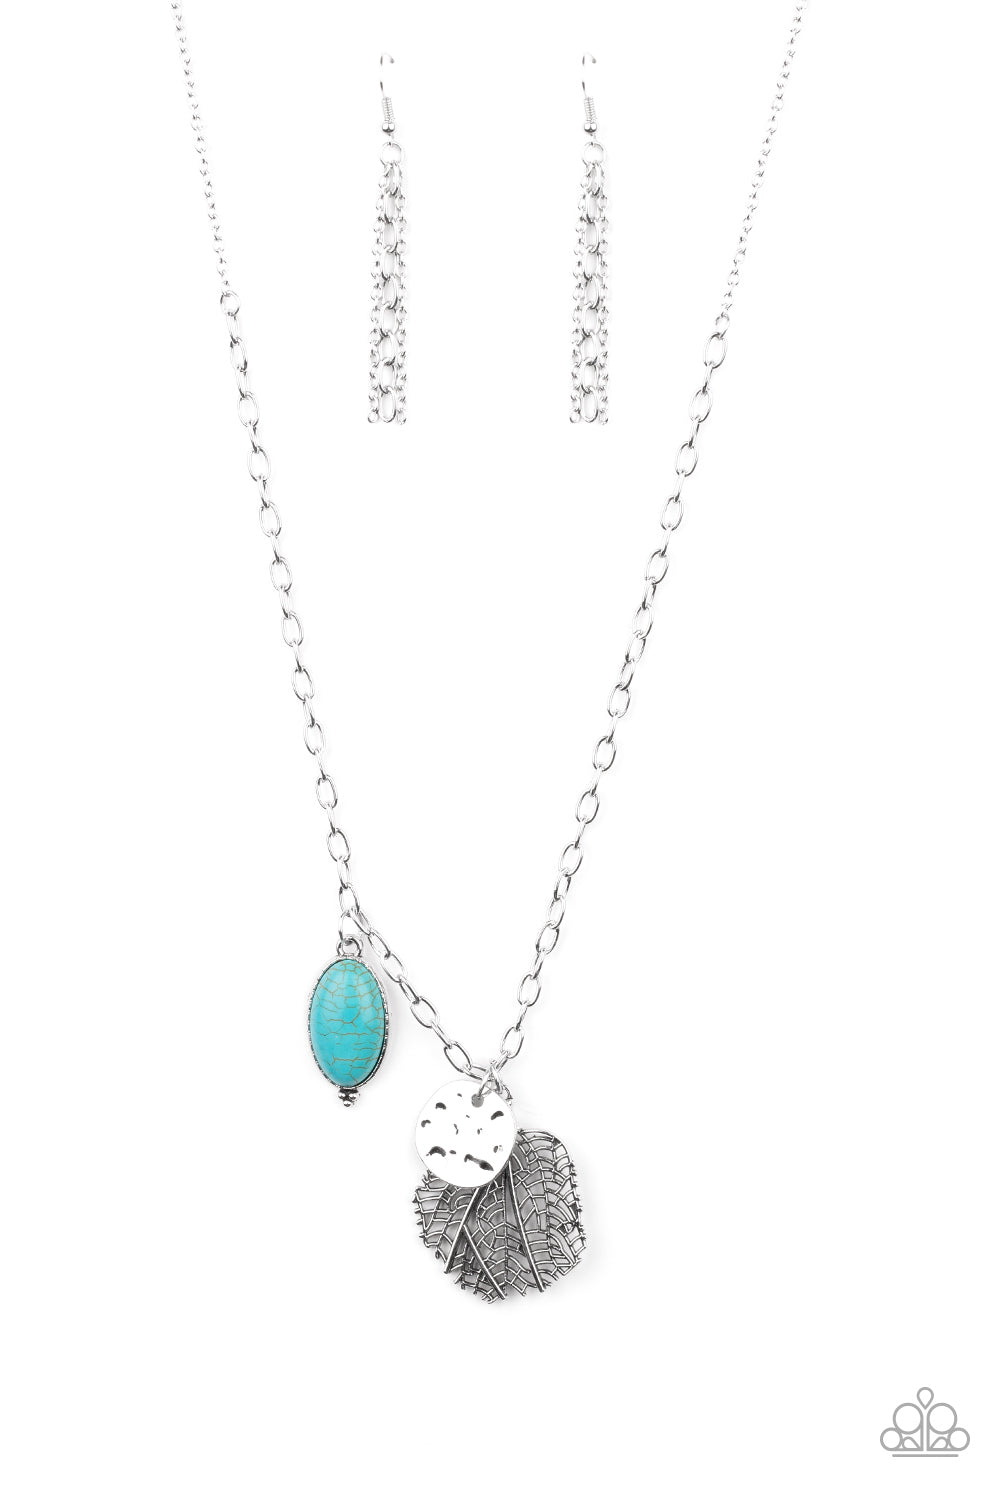 Free-Spirited Forager Blue Necklace